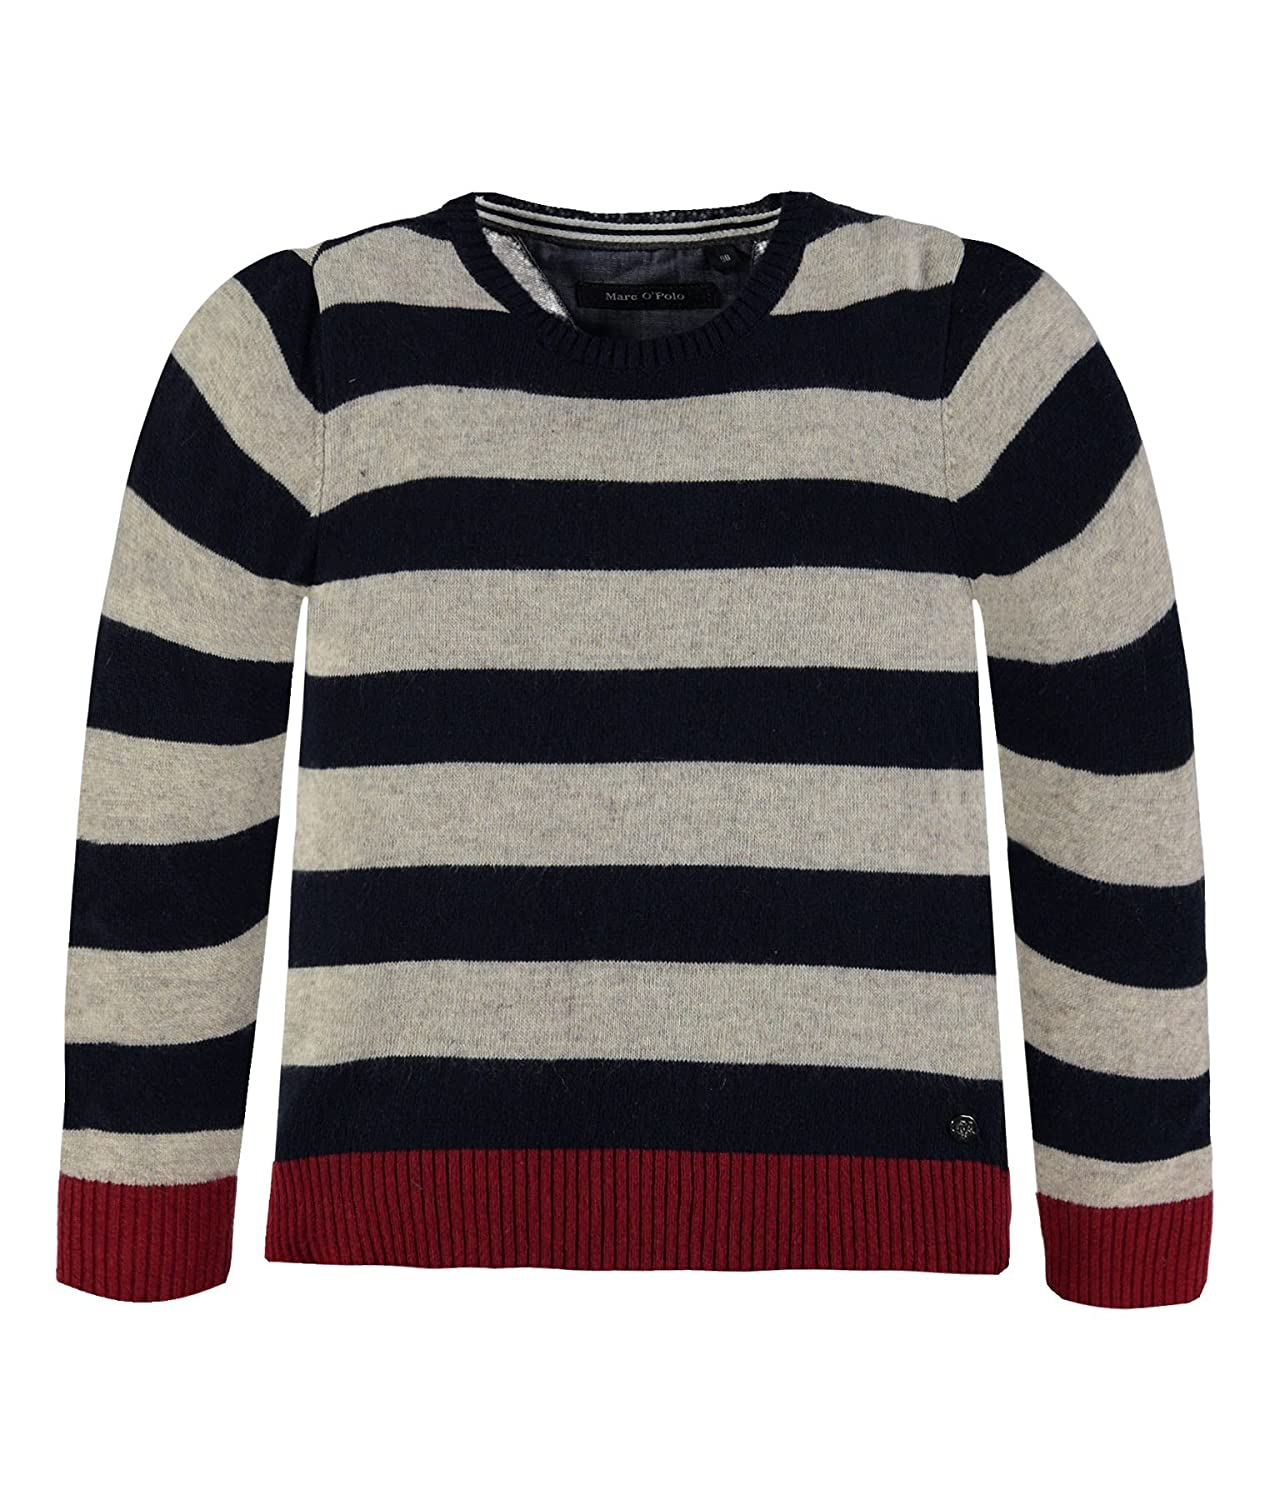 Marc O Polo Kids Strickpullover 1/1 Arm Jersey, Multicolor ...